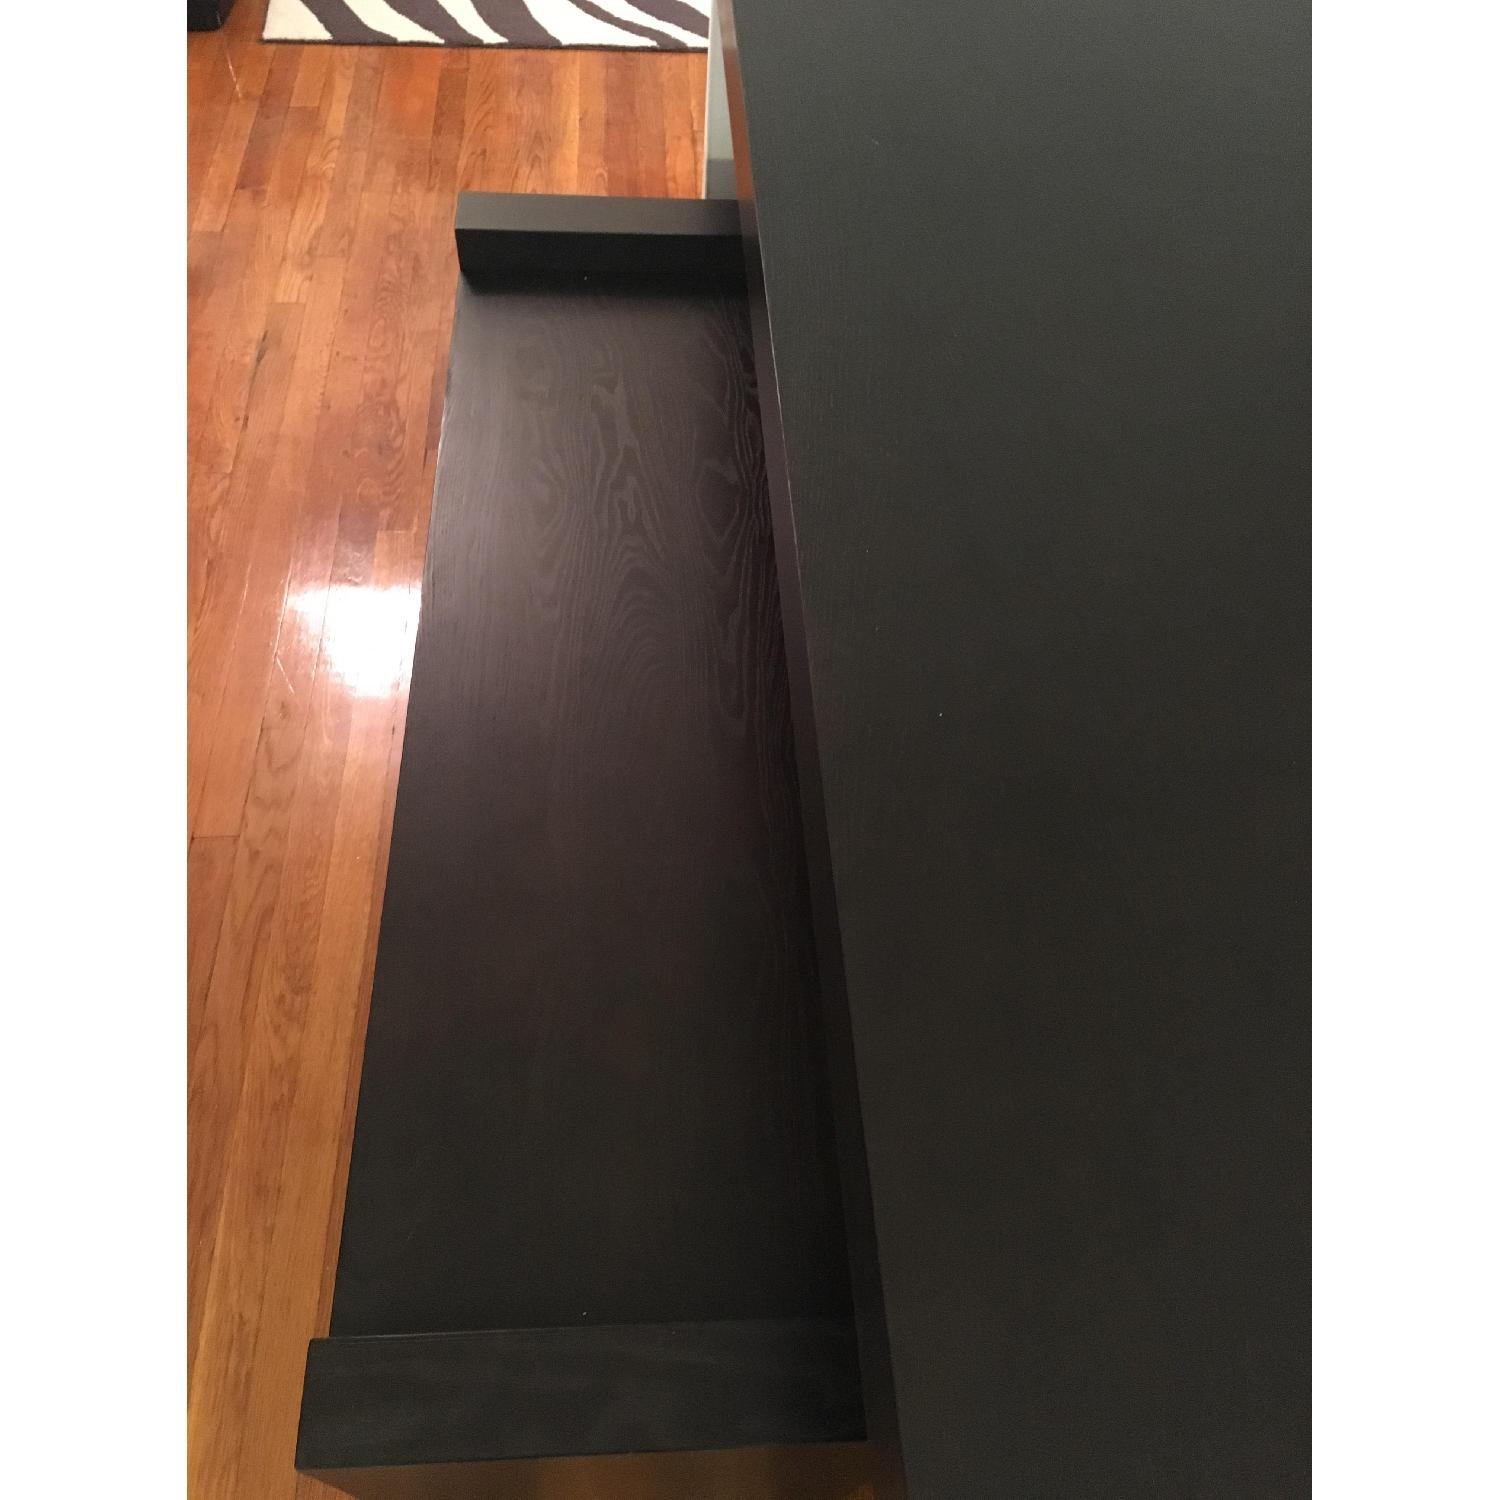 West Elm Modern Dining Table w/ 1 Bench - image-3